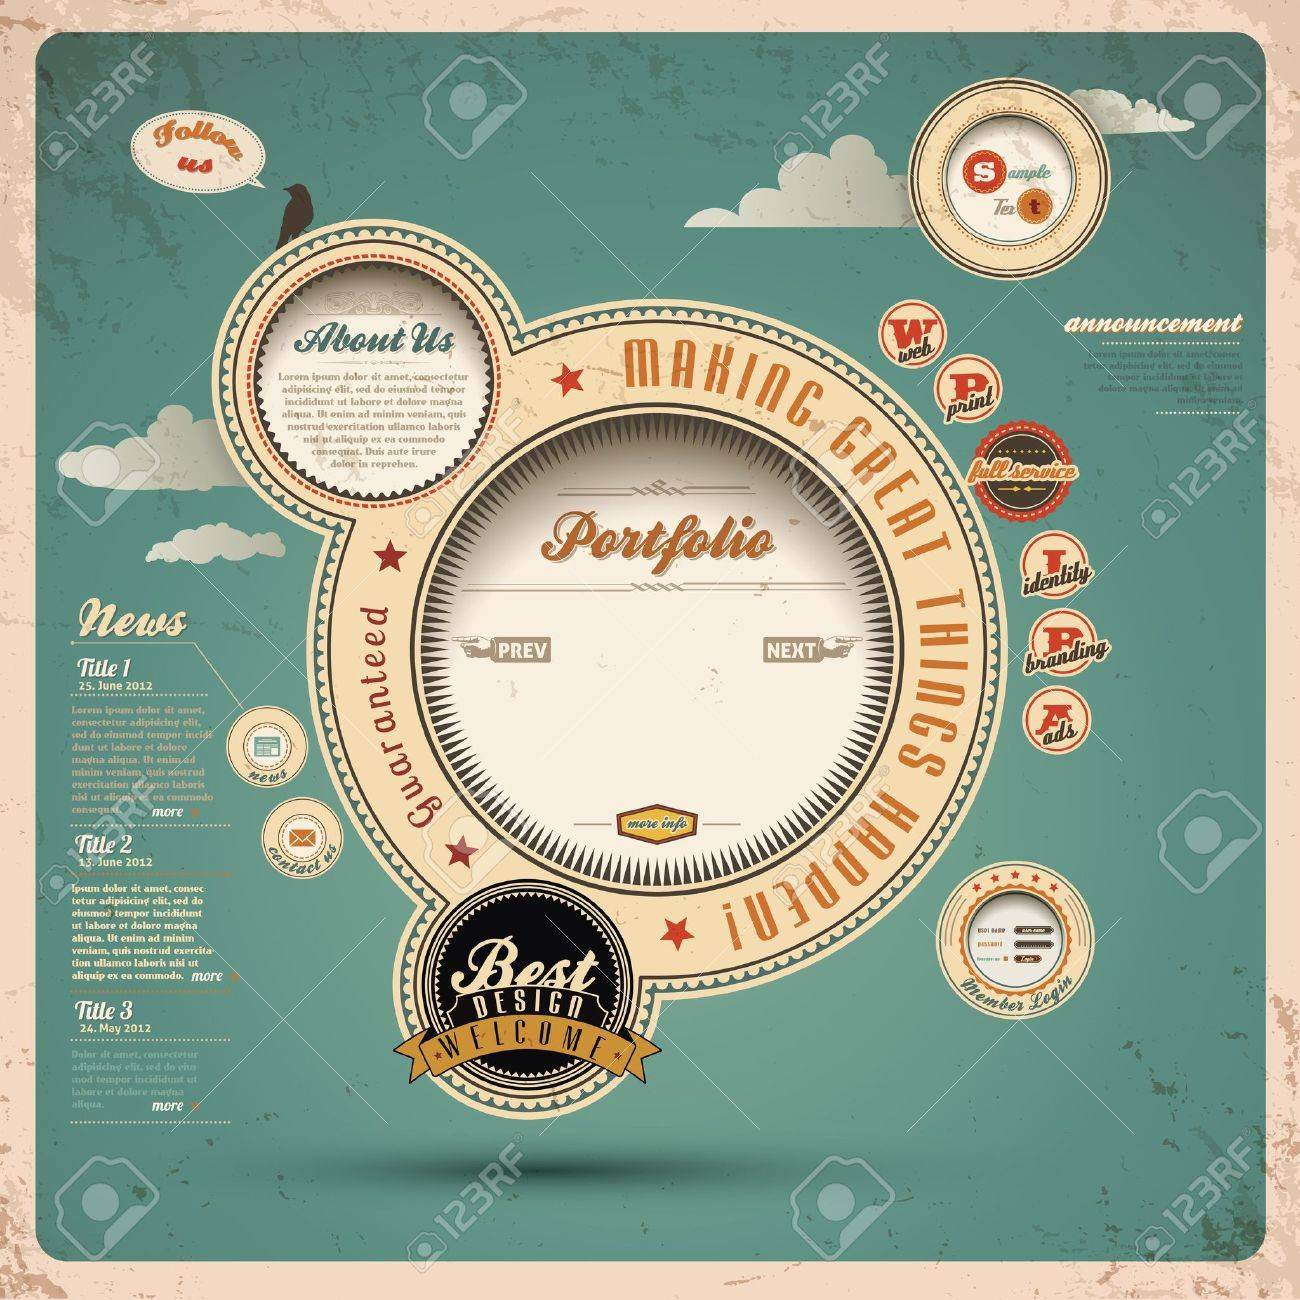 Vintage Web design Stock Vector - 14965955